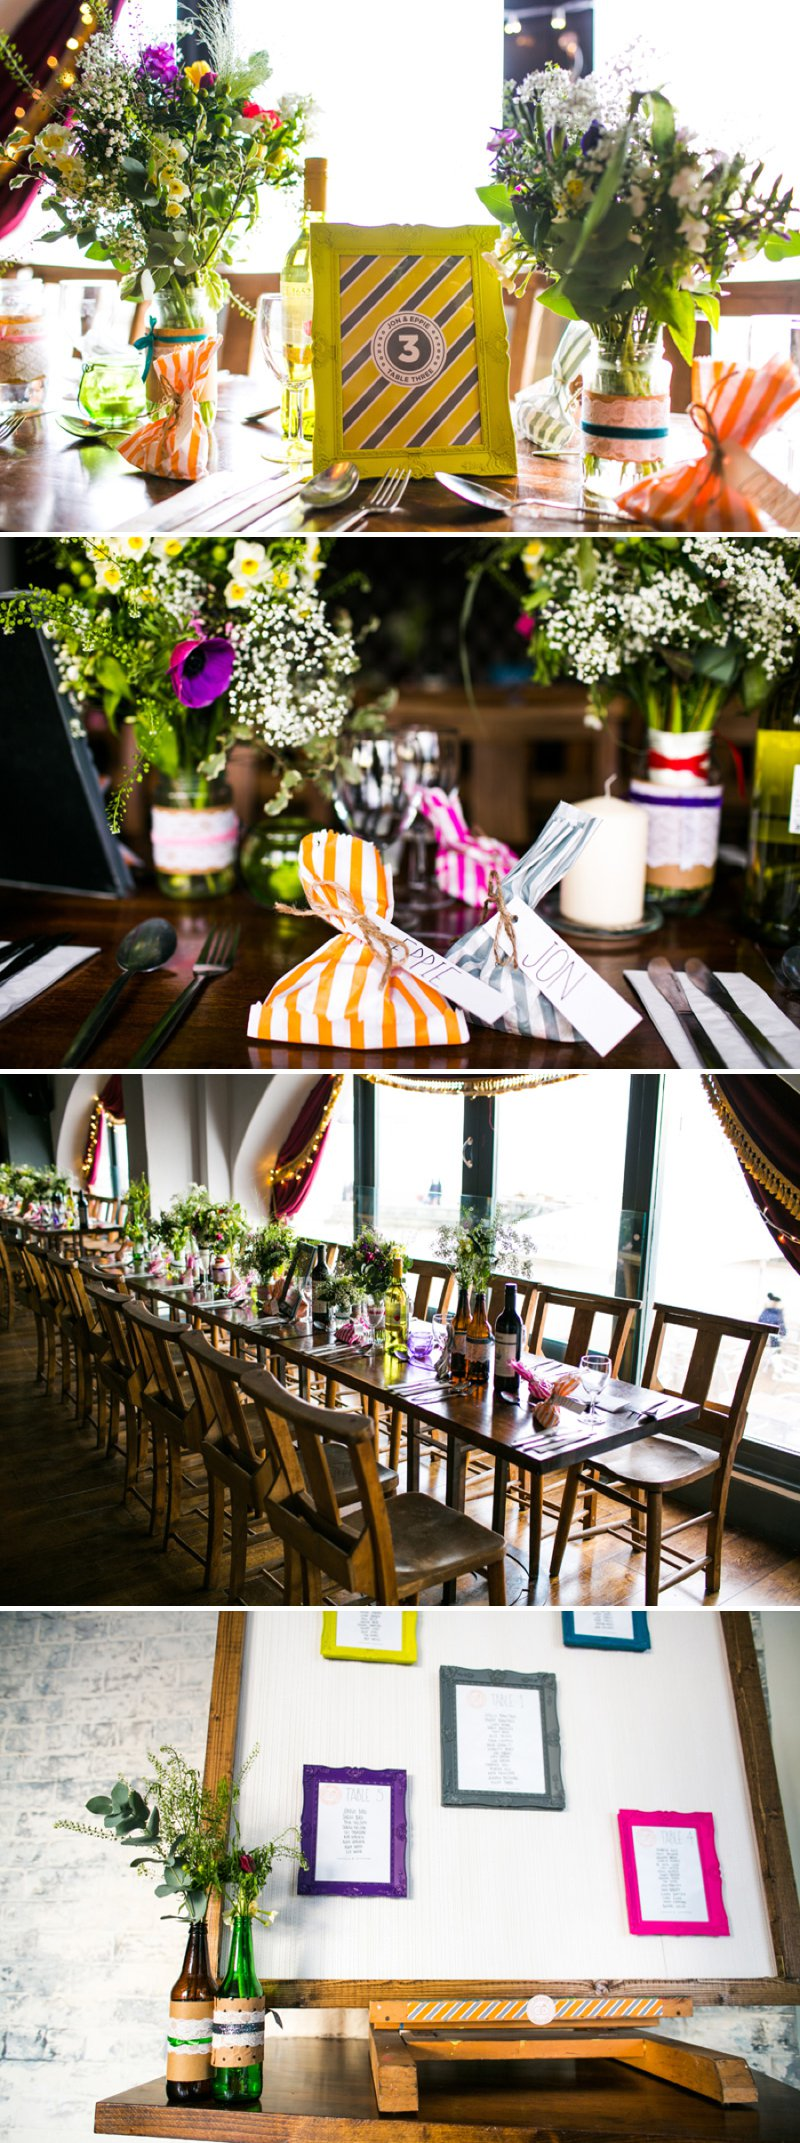 Colour Pop Wedding Decor Stripes Table Settings